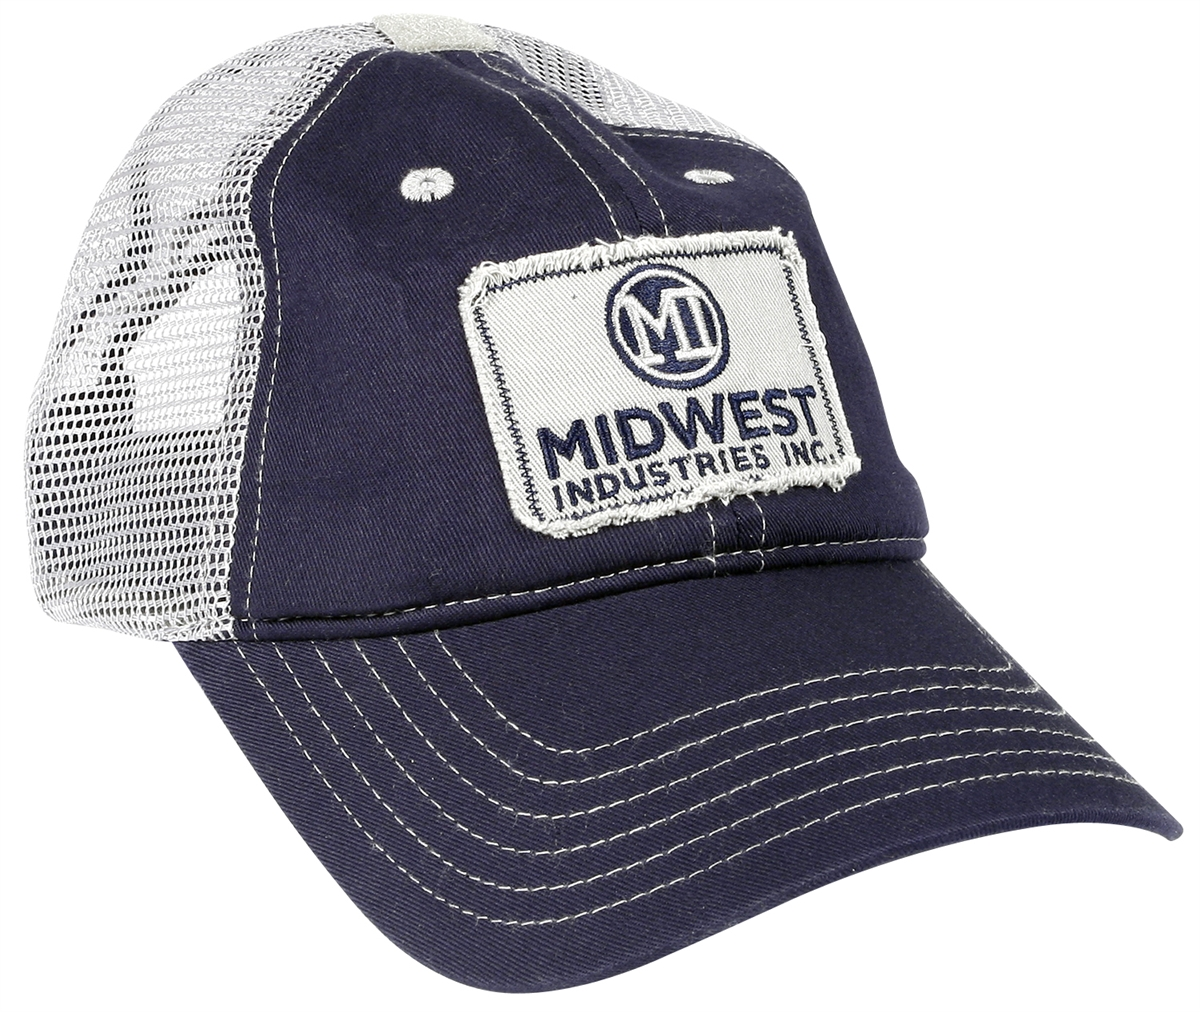 Blue and White Trucker Mesh Hat bb4981aa0d5